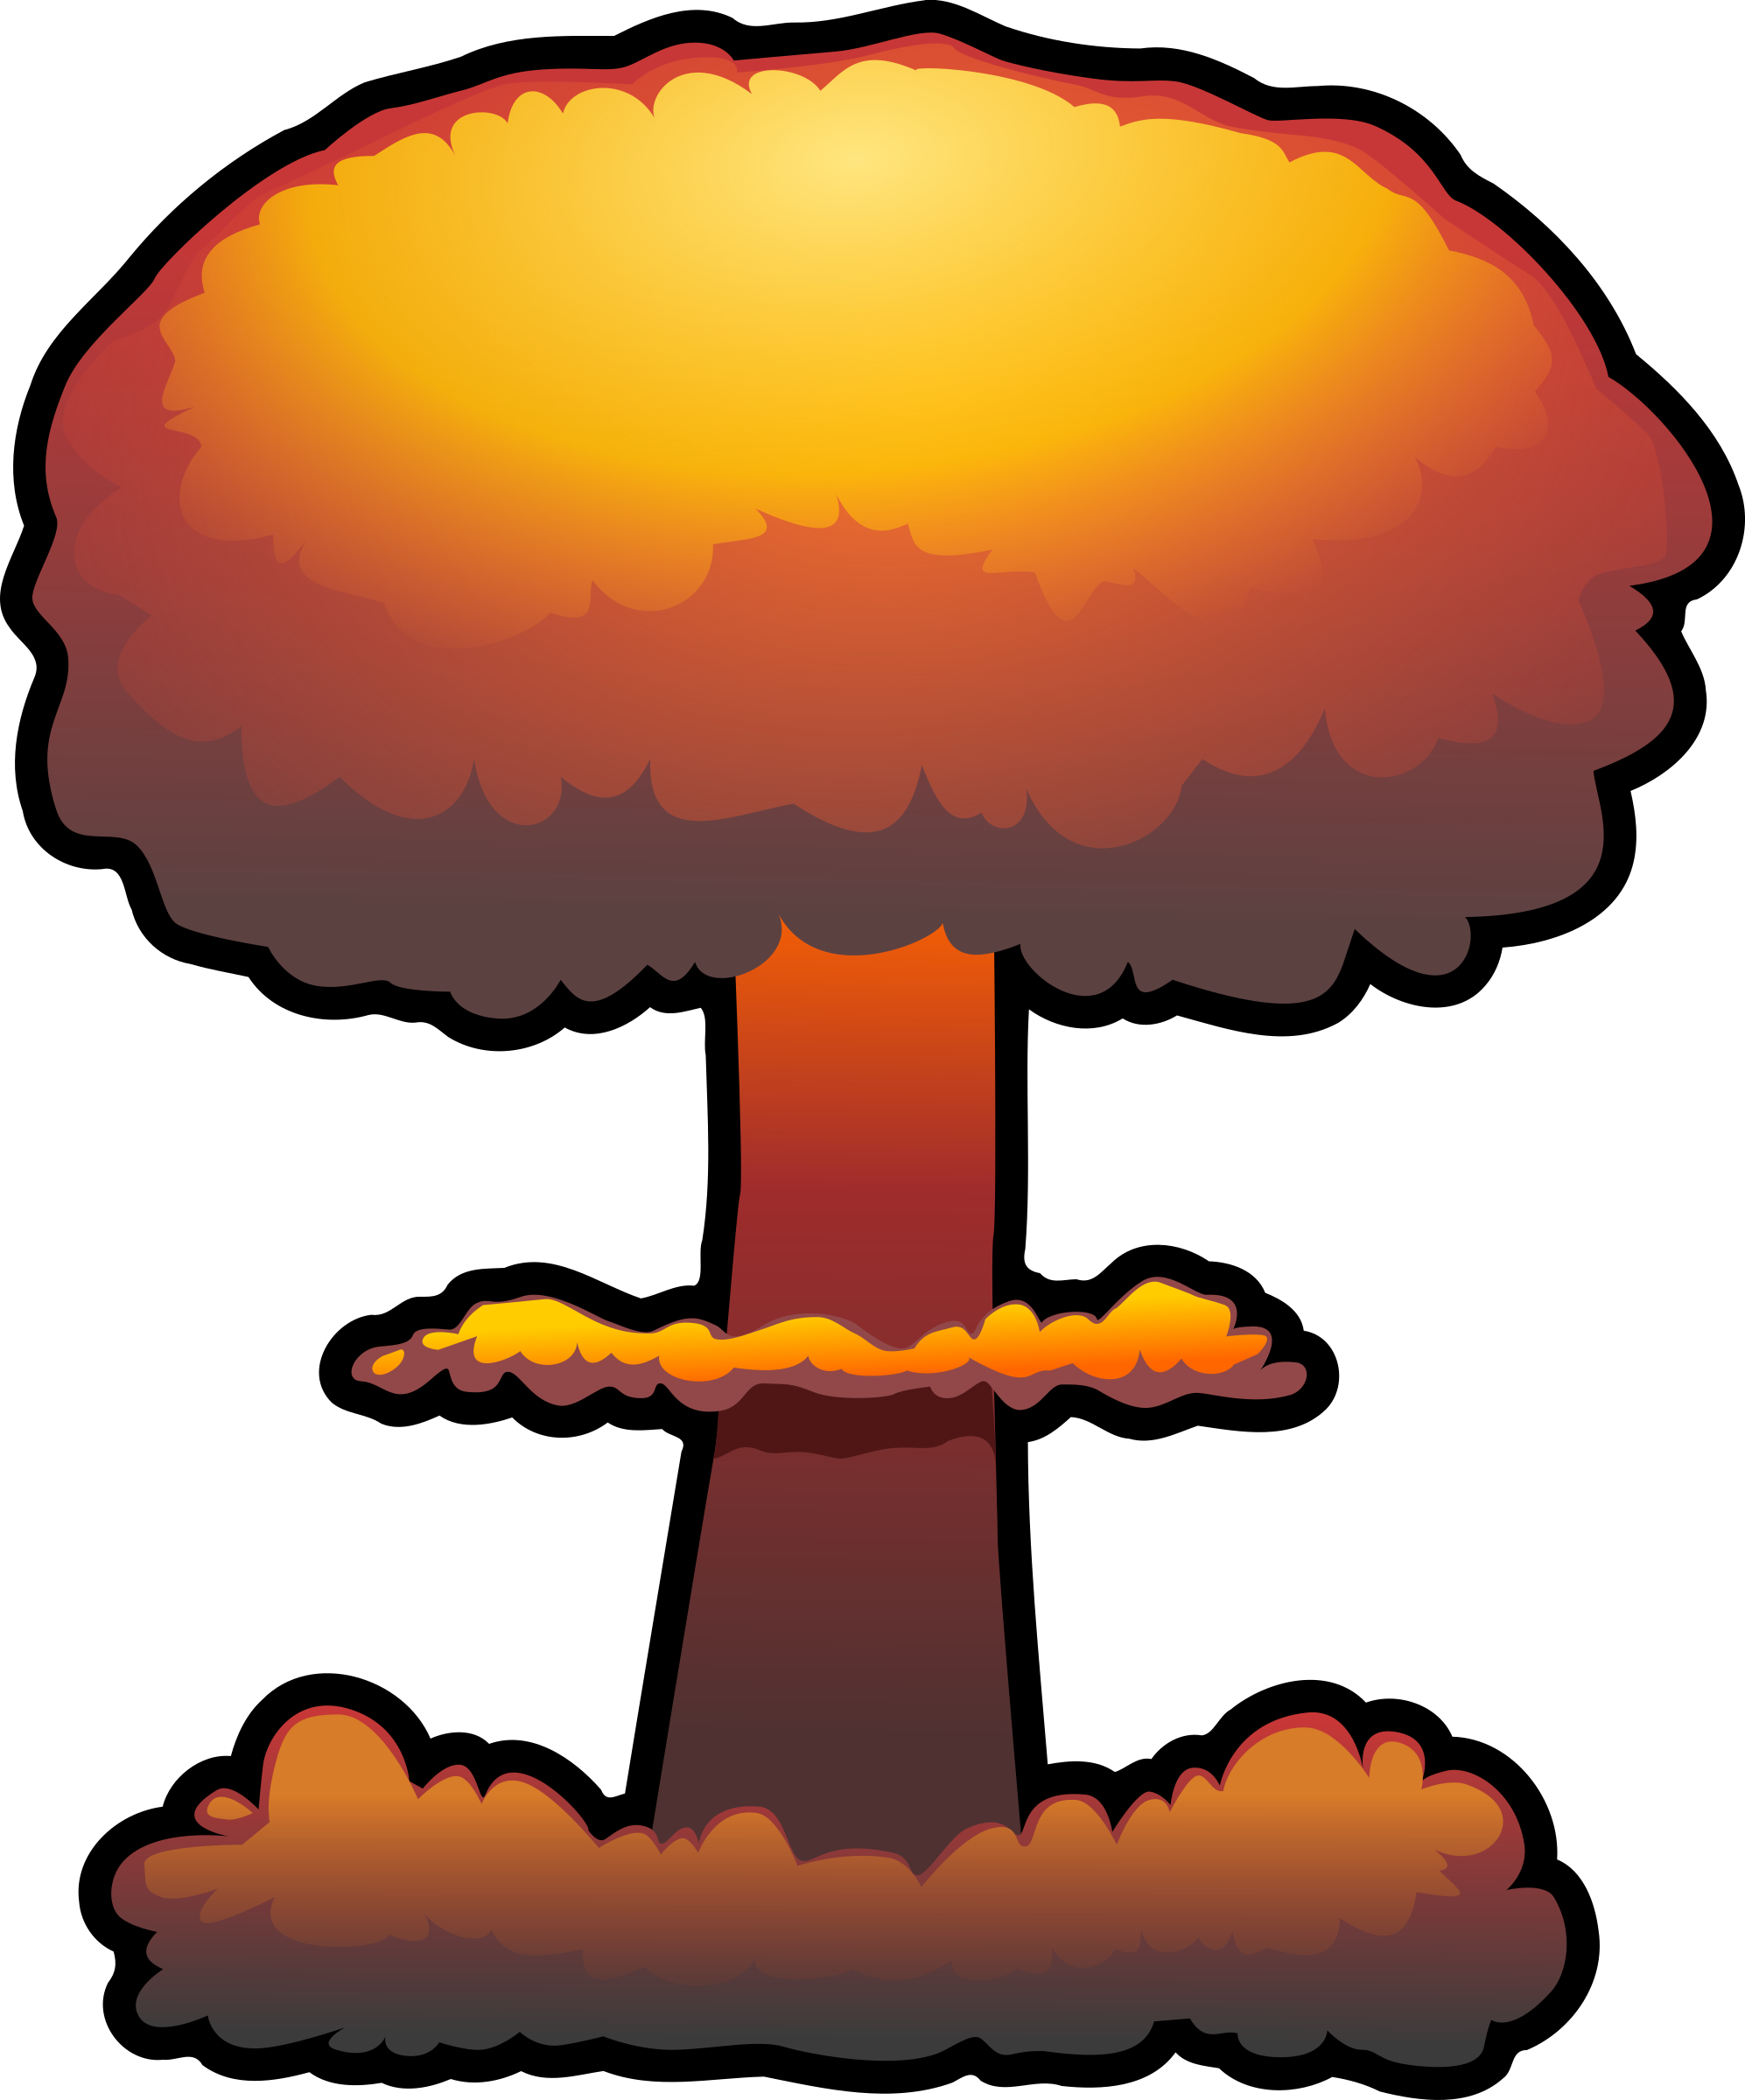 Nuke explosion png